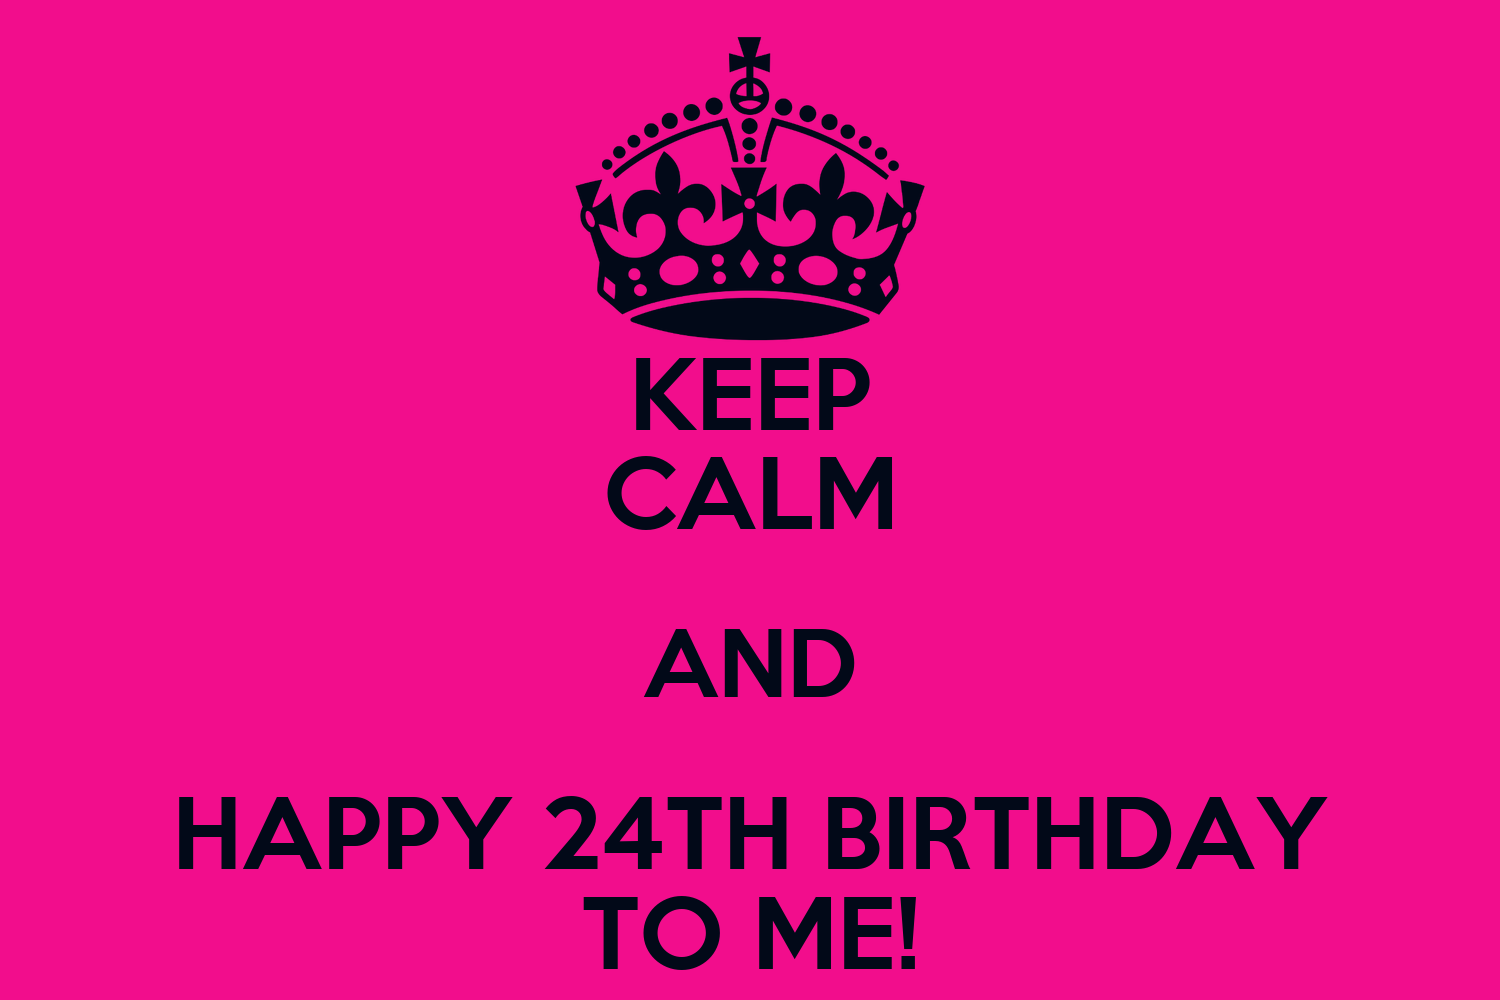 KEEP CALM AND HAPPY 24TH BIRTHDAY TO ME! Poster | Boss ...